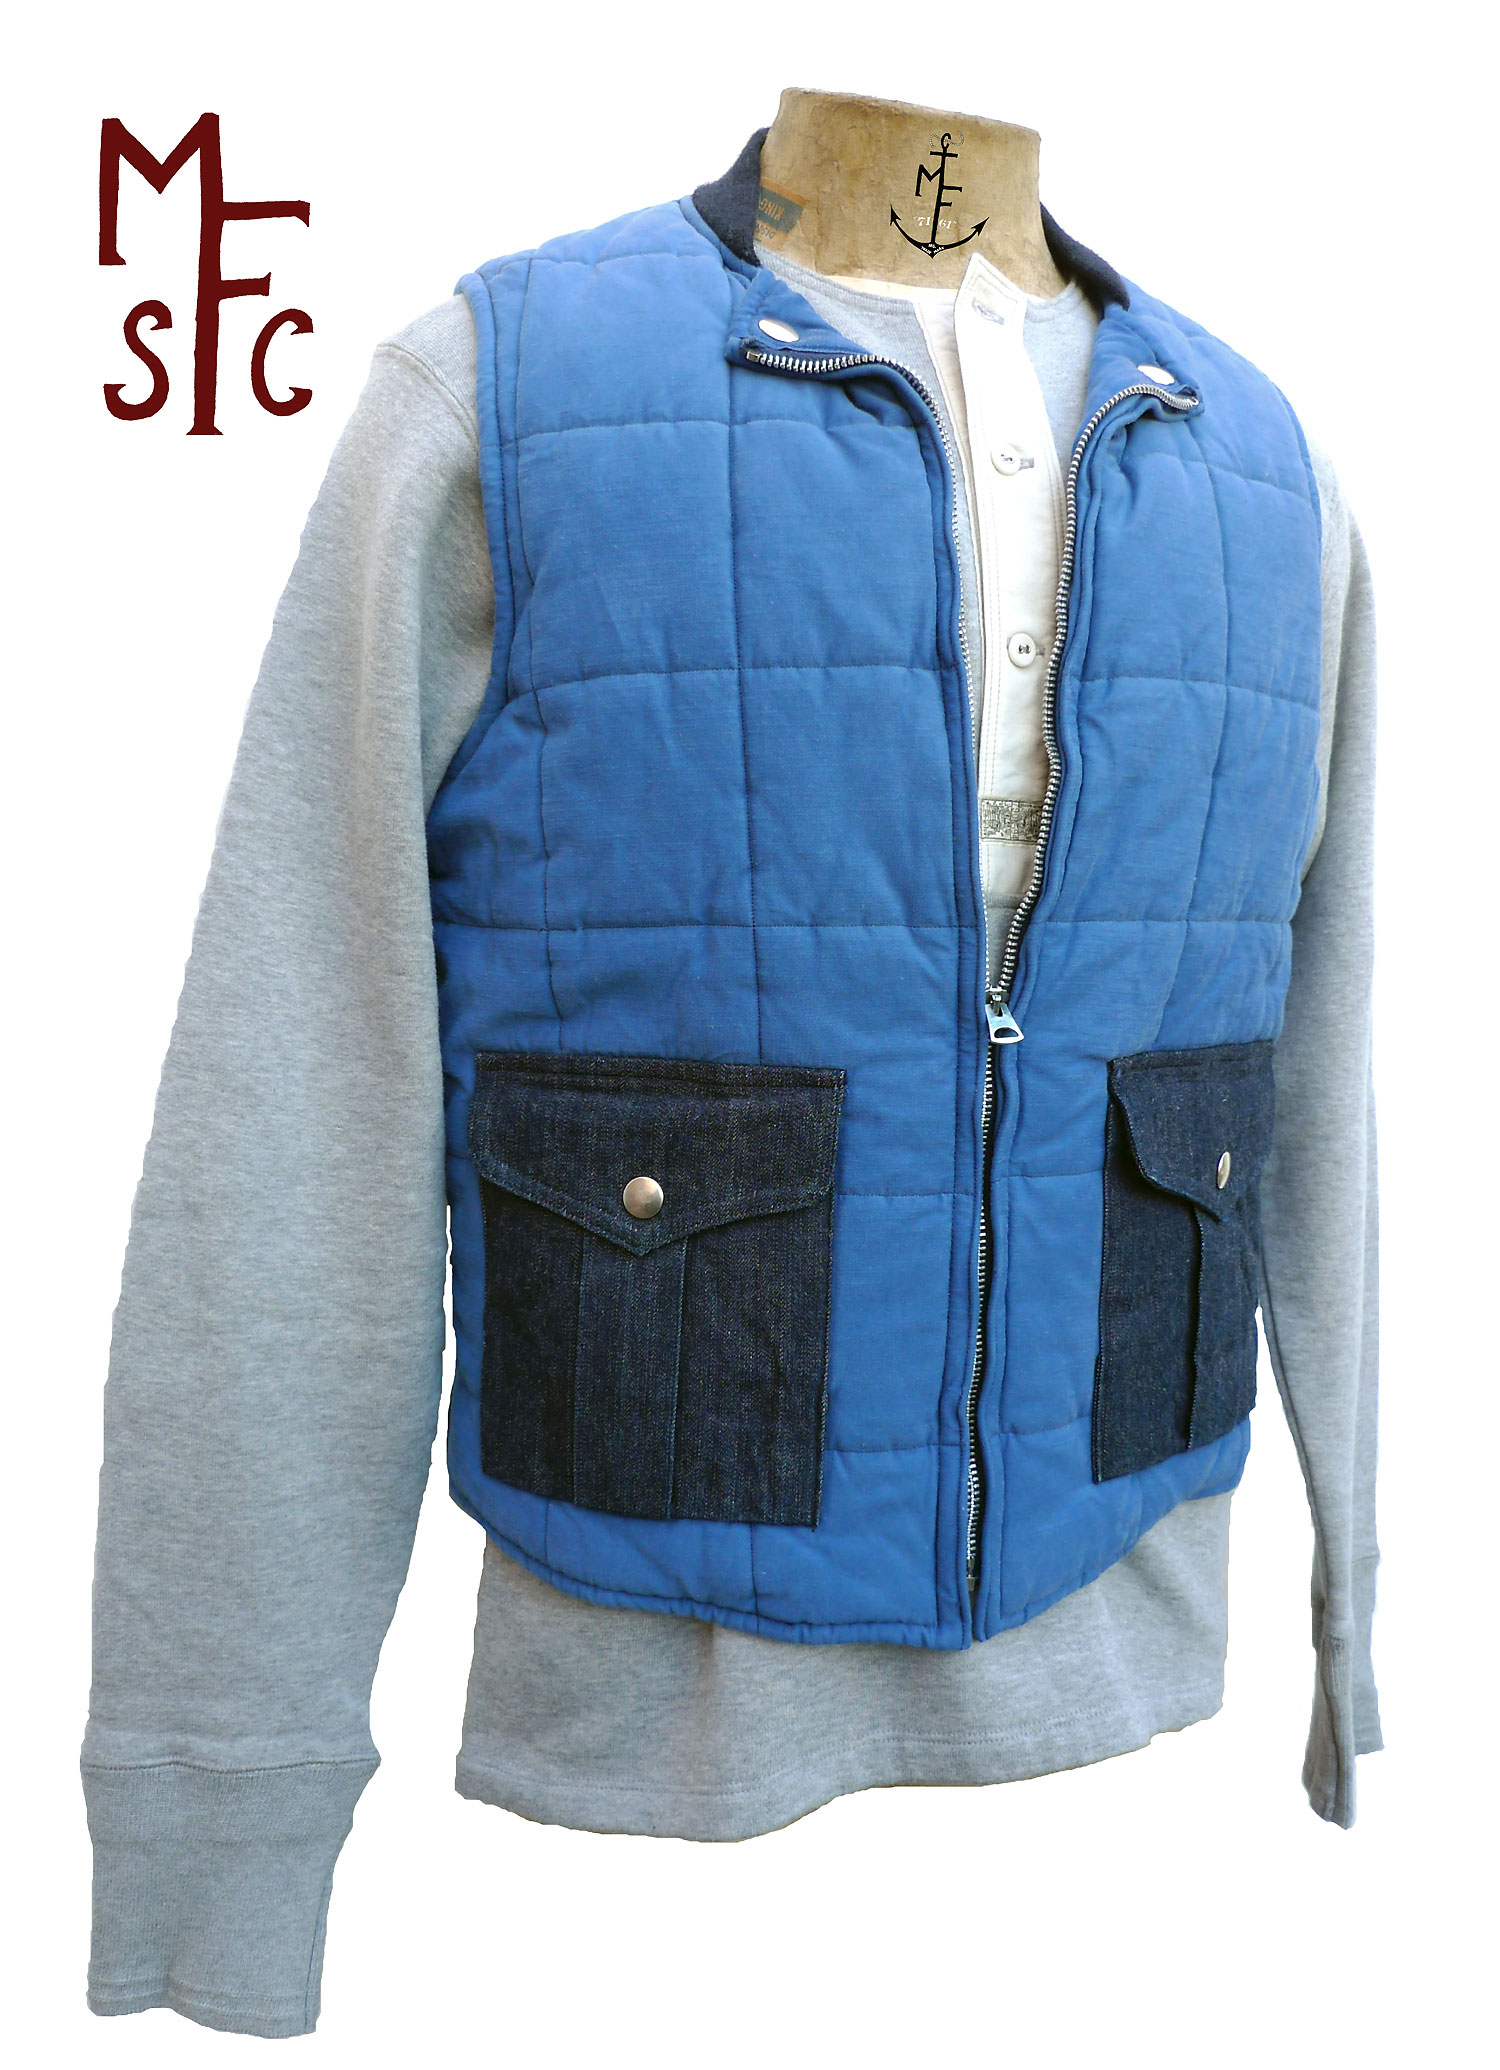 MFSC_Chiller_fleece